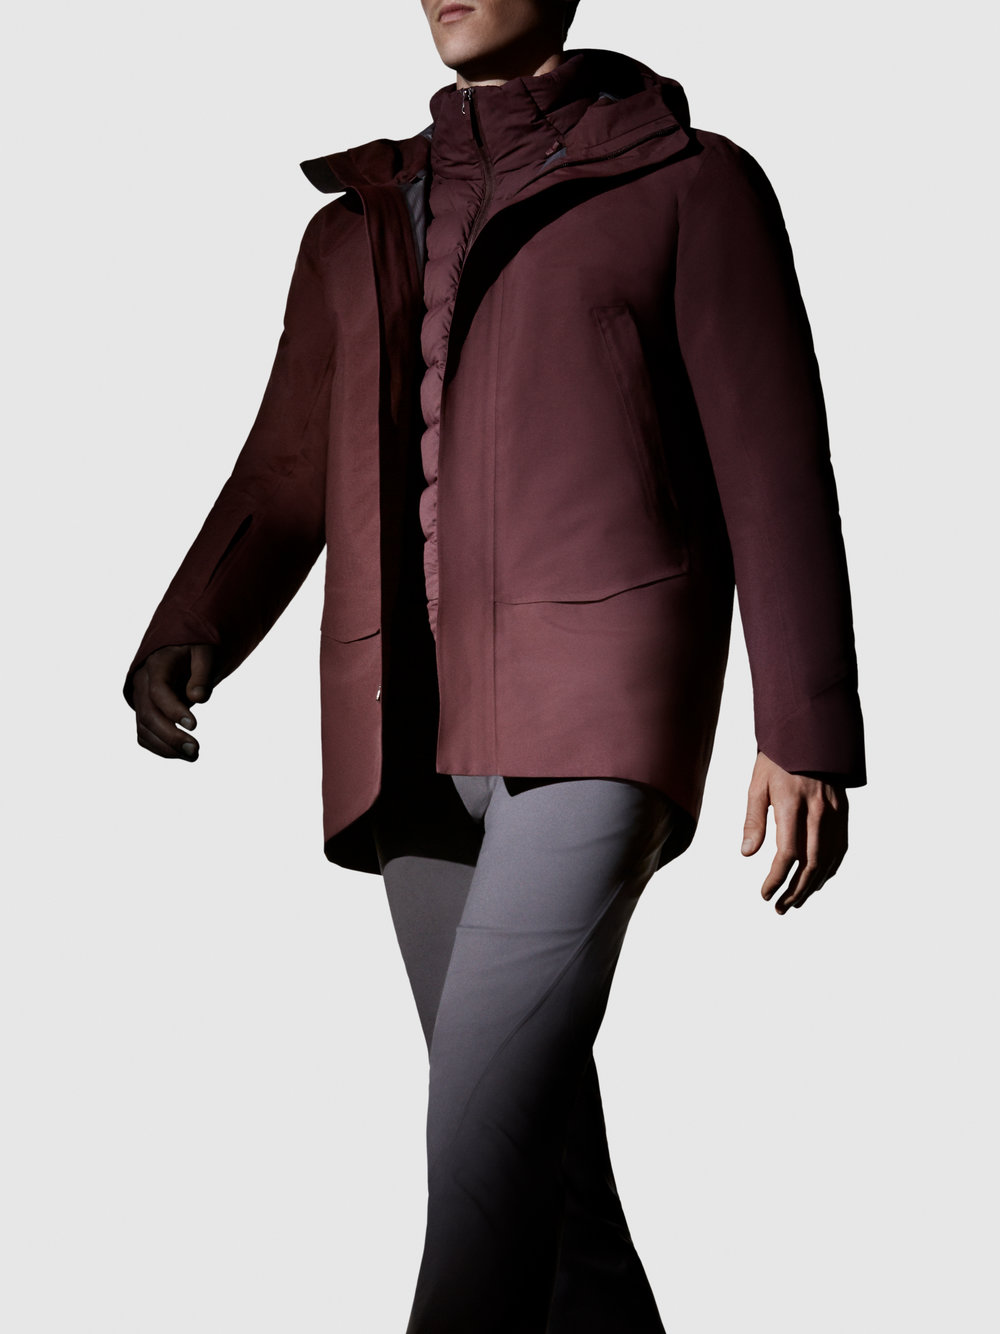 Arcteryx-Veilance-FW17-On-Model-Imagery-Patrol-Down-Coat-Maroon-Portrait-RGB.jpg